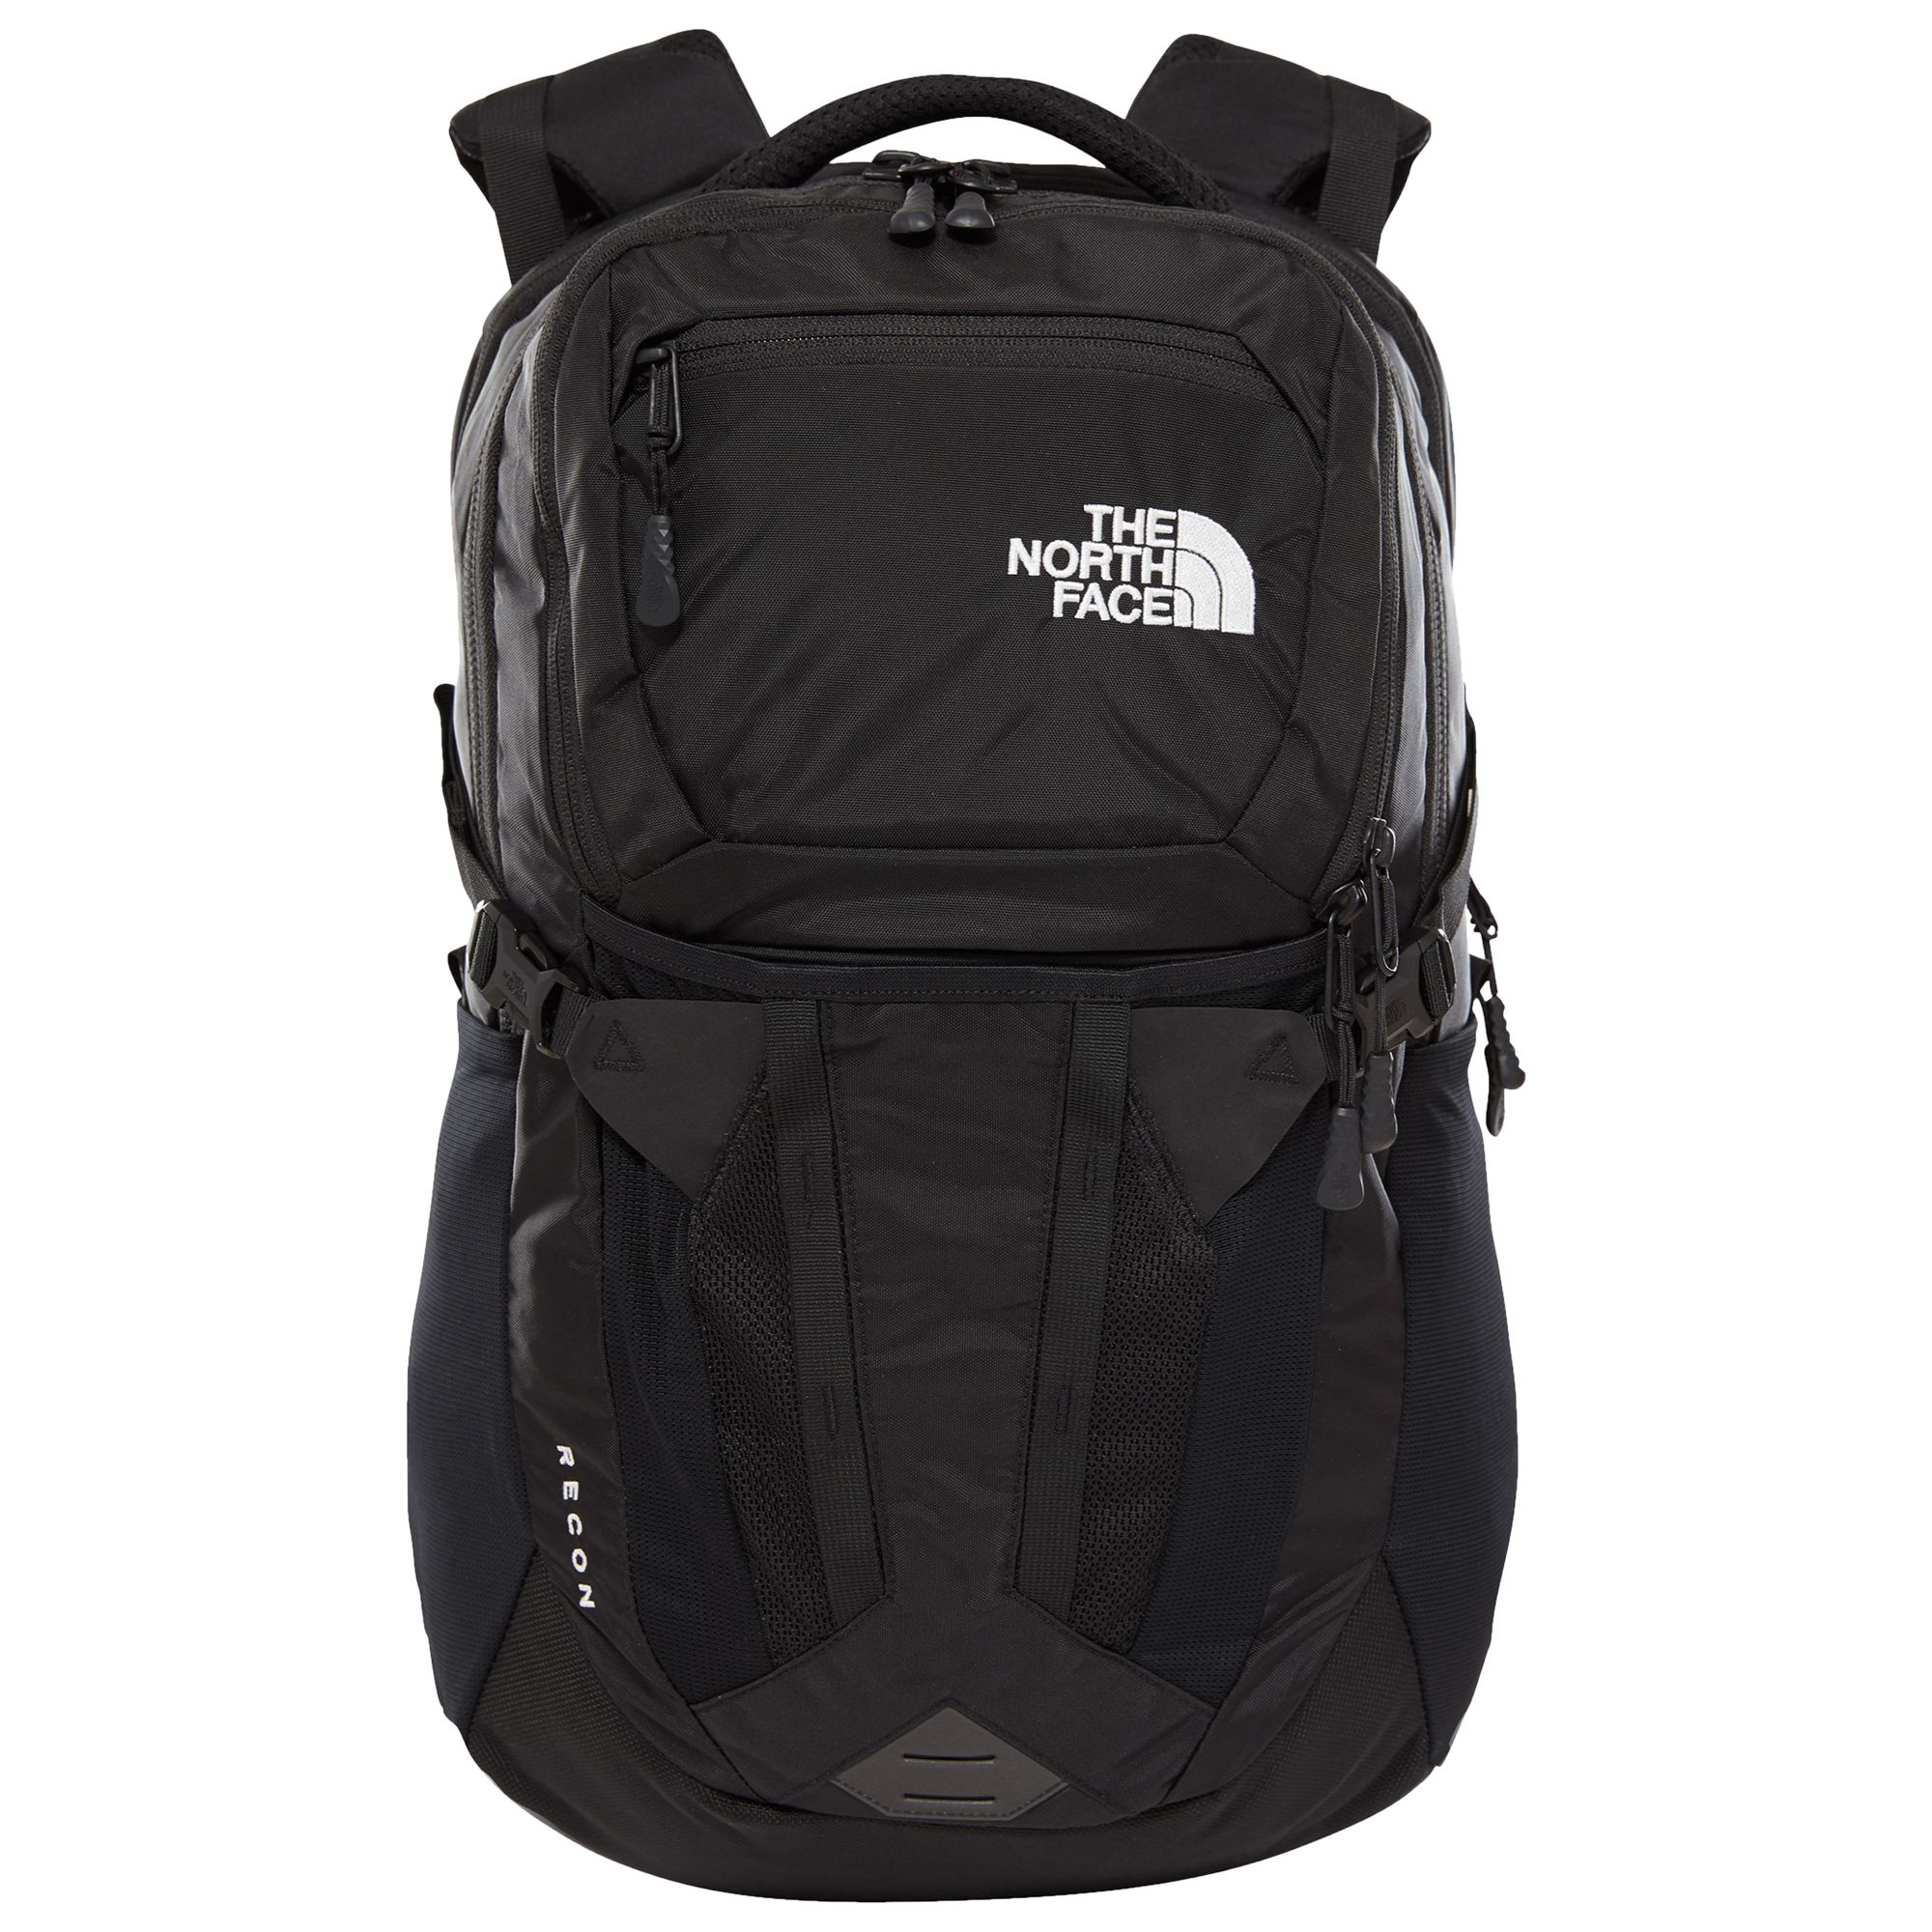 The North Face The North Face Recon Day Backpack, Black